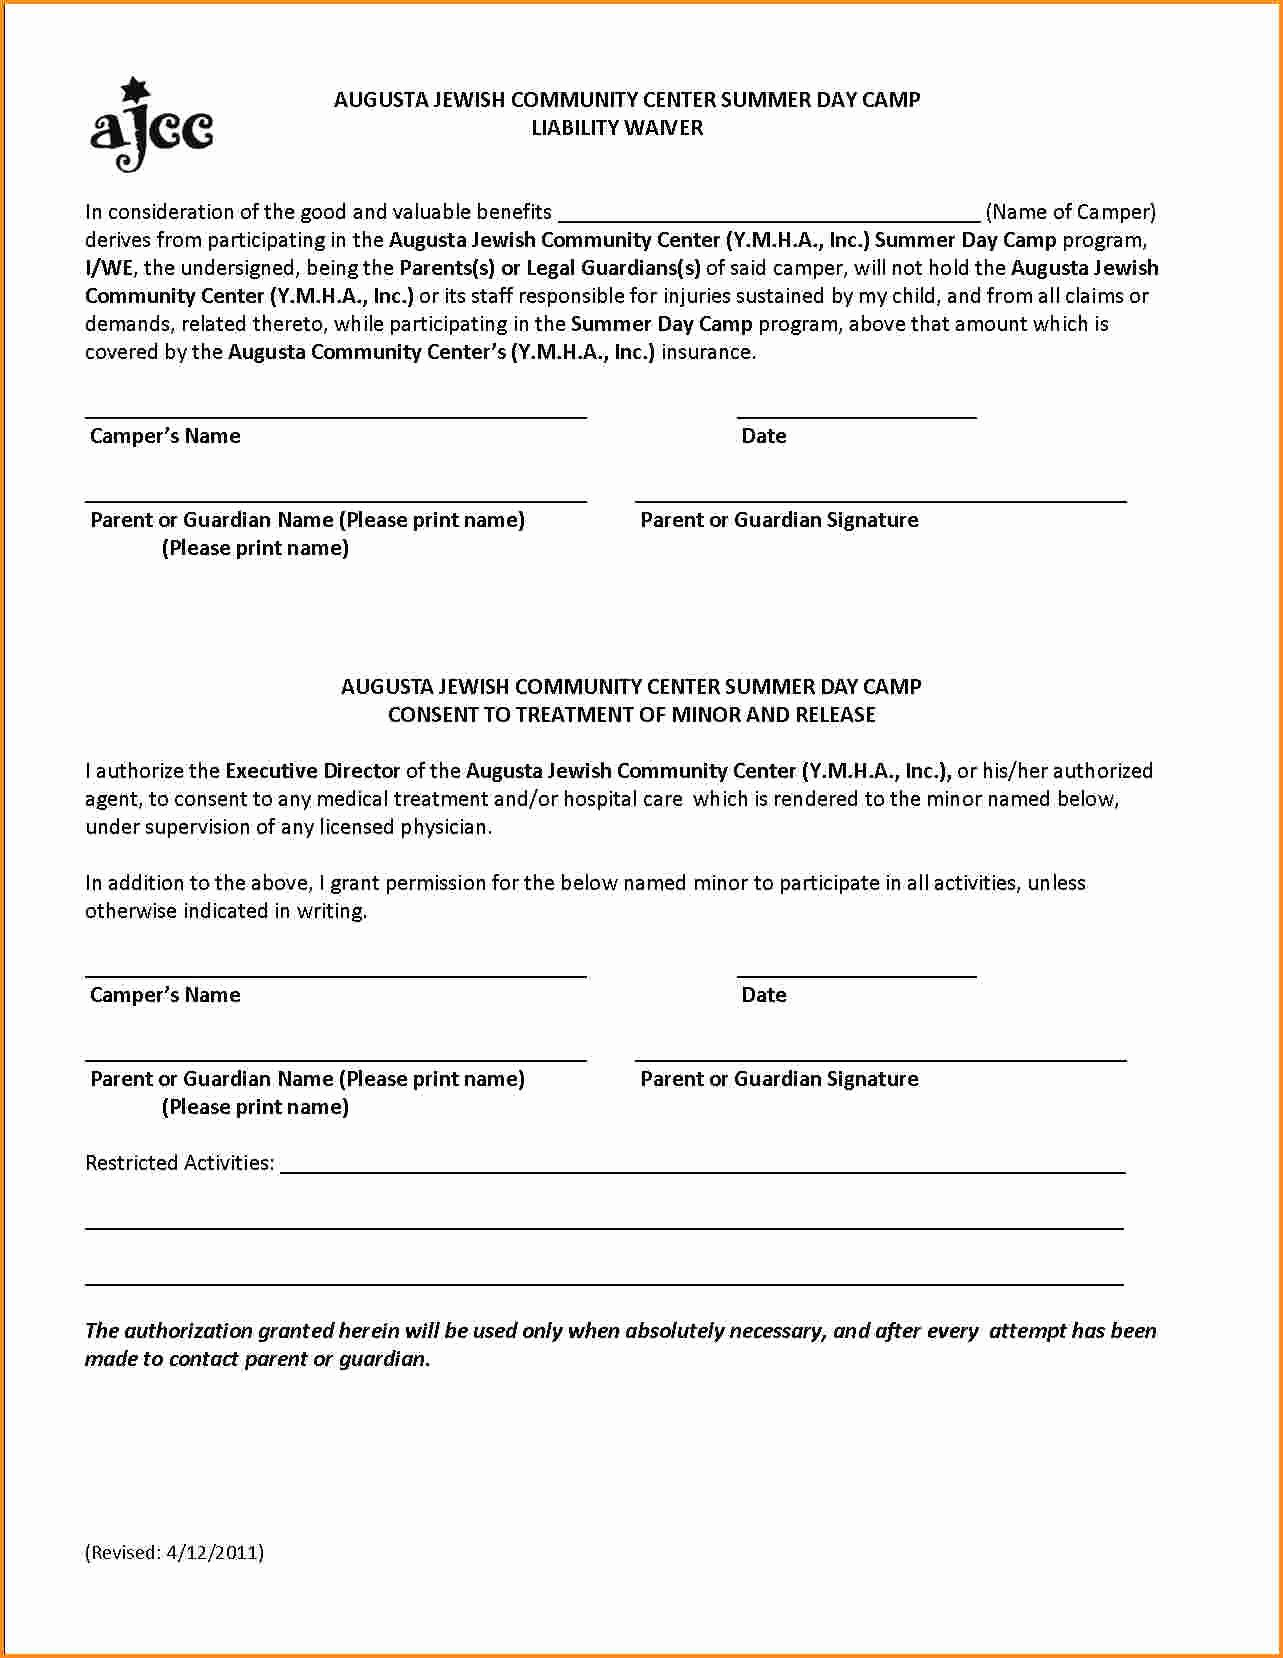 General Liability Waiver form Template Lovely 28 Of Product Liability Waiver form Template